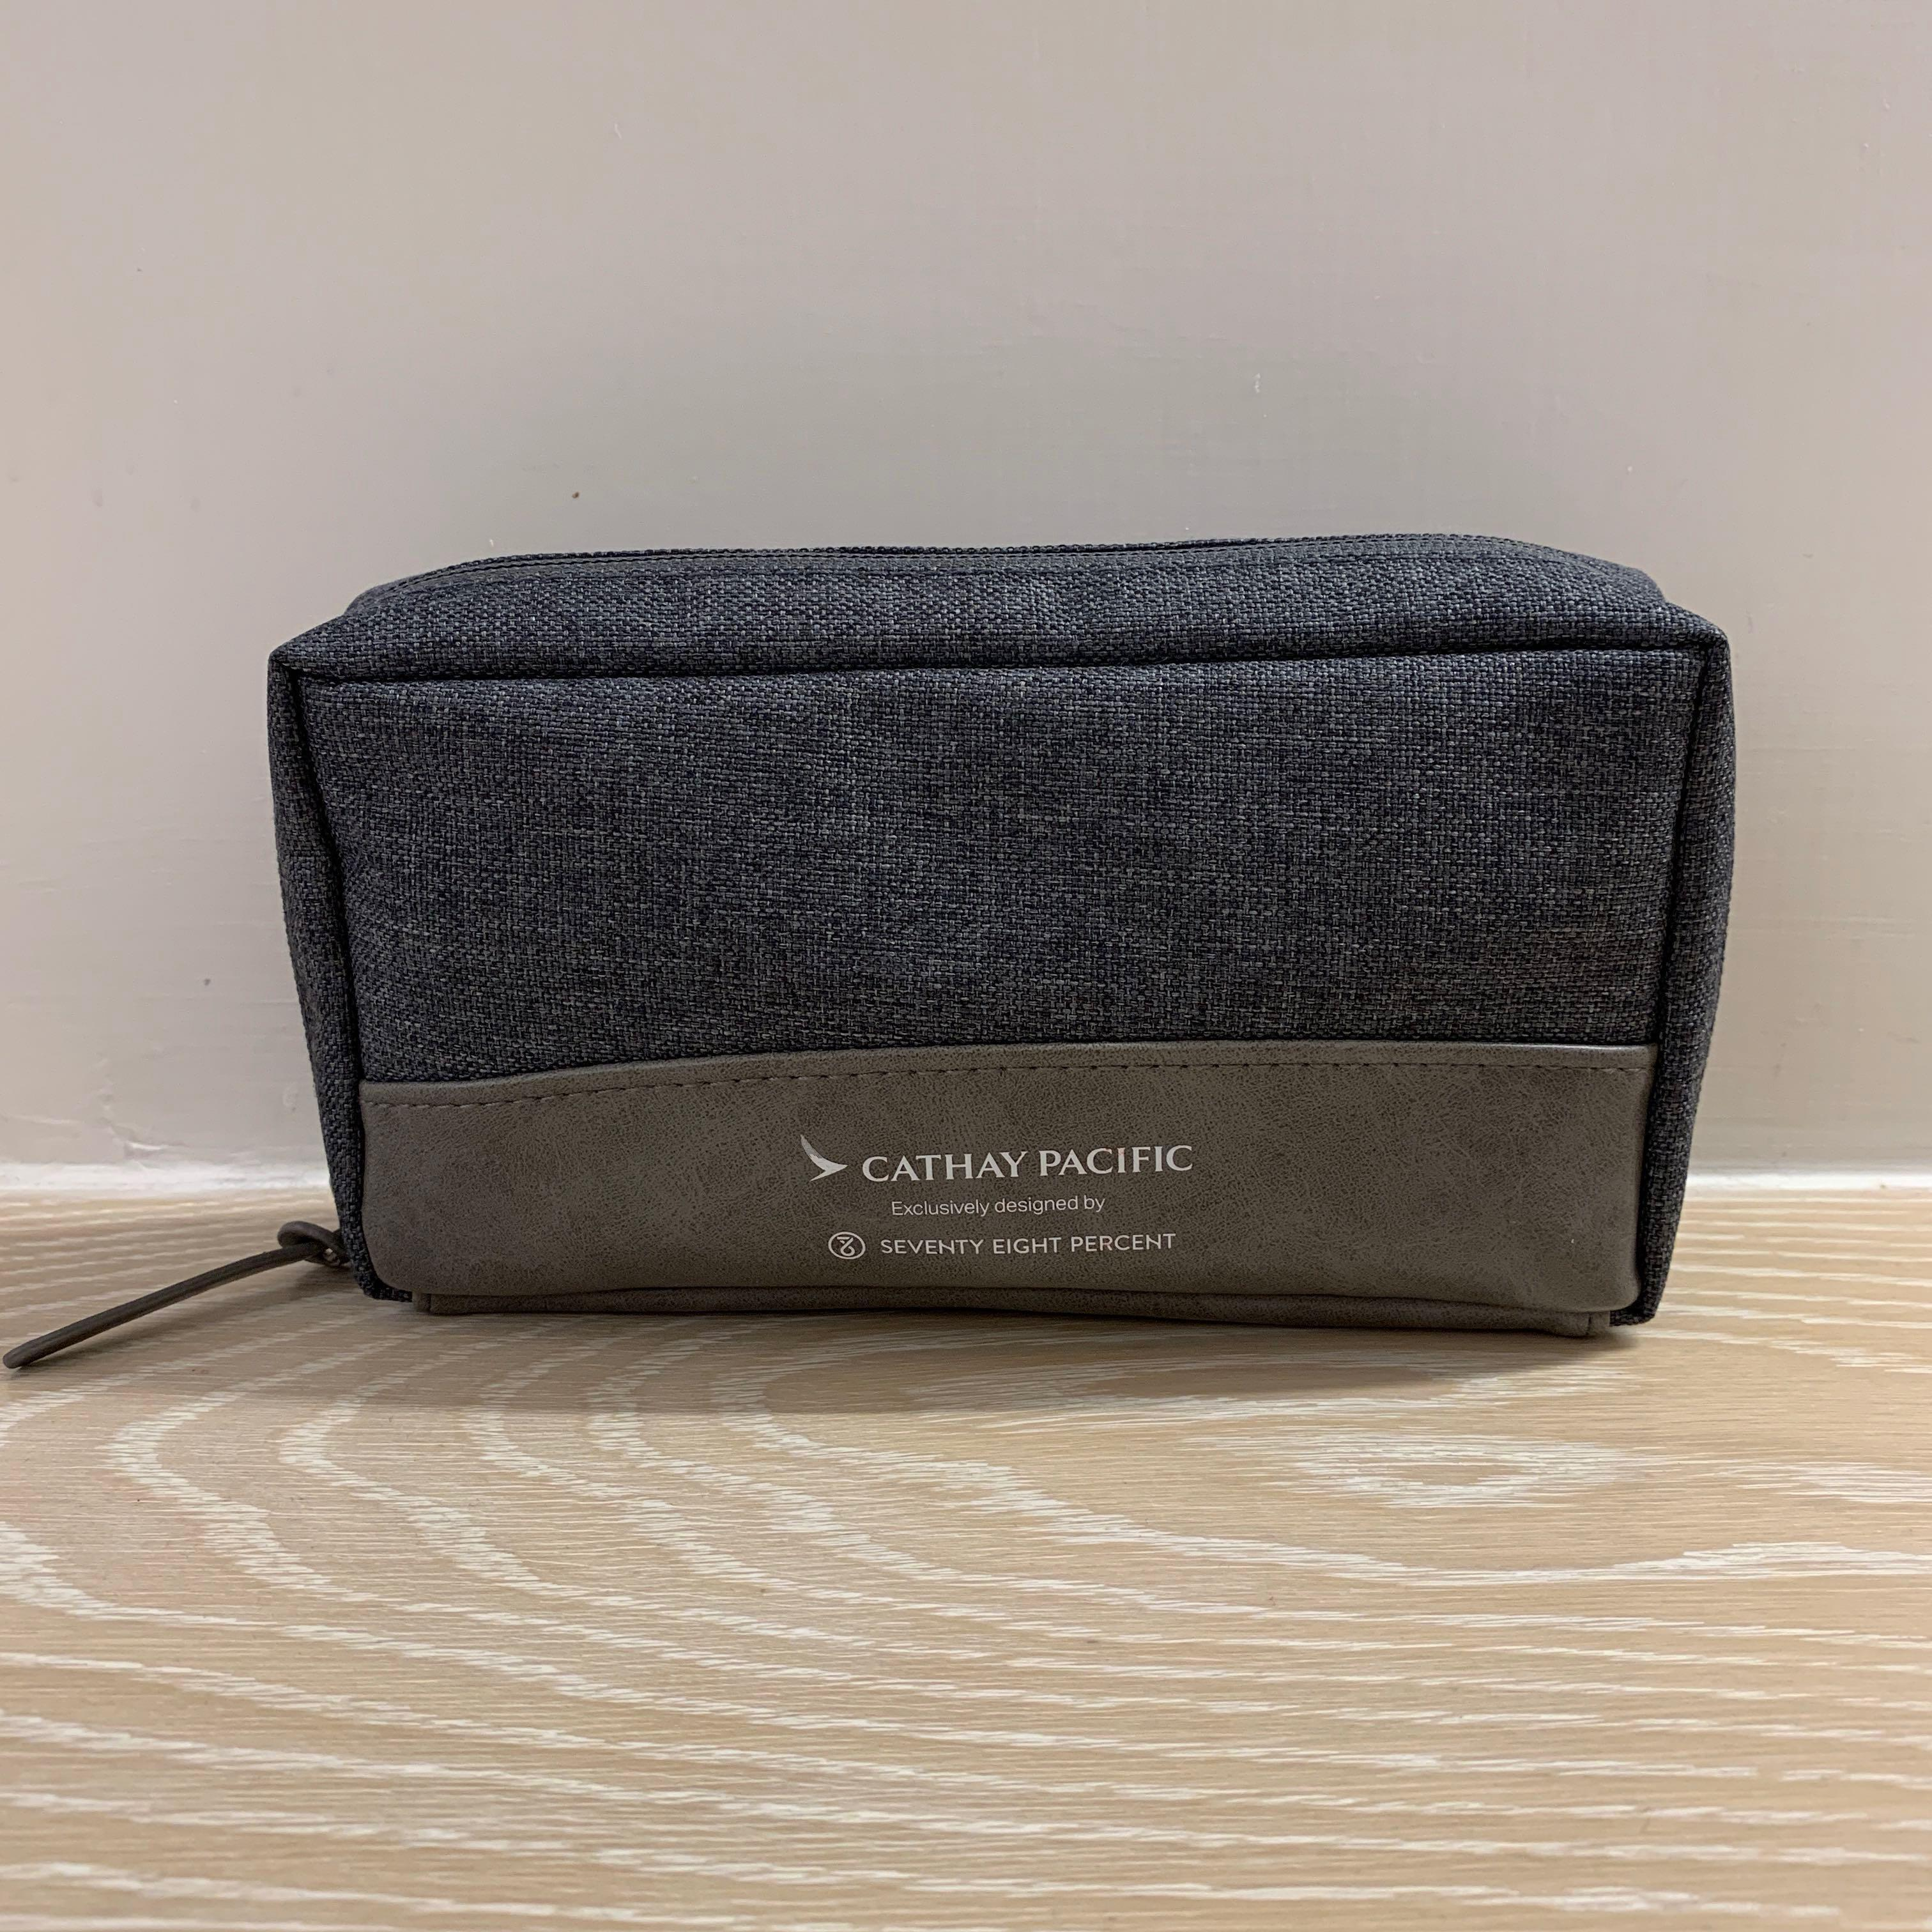 Cathay Pacific Business Class Overnight Kit